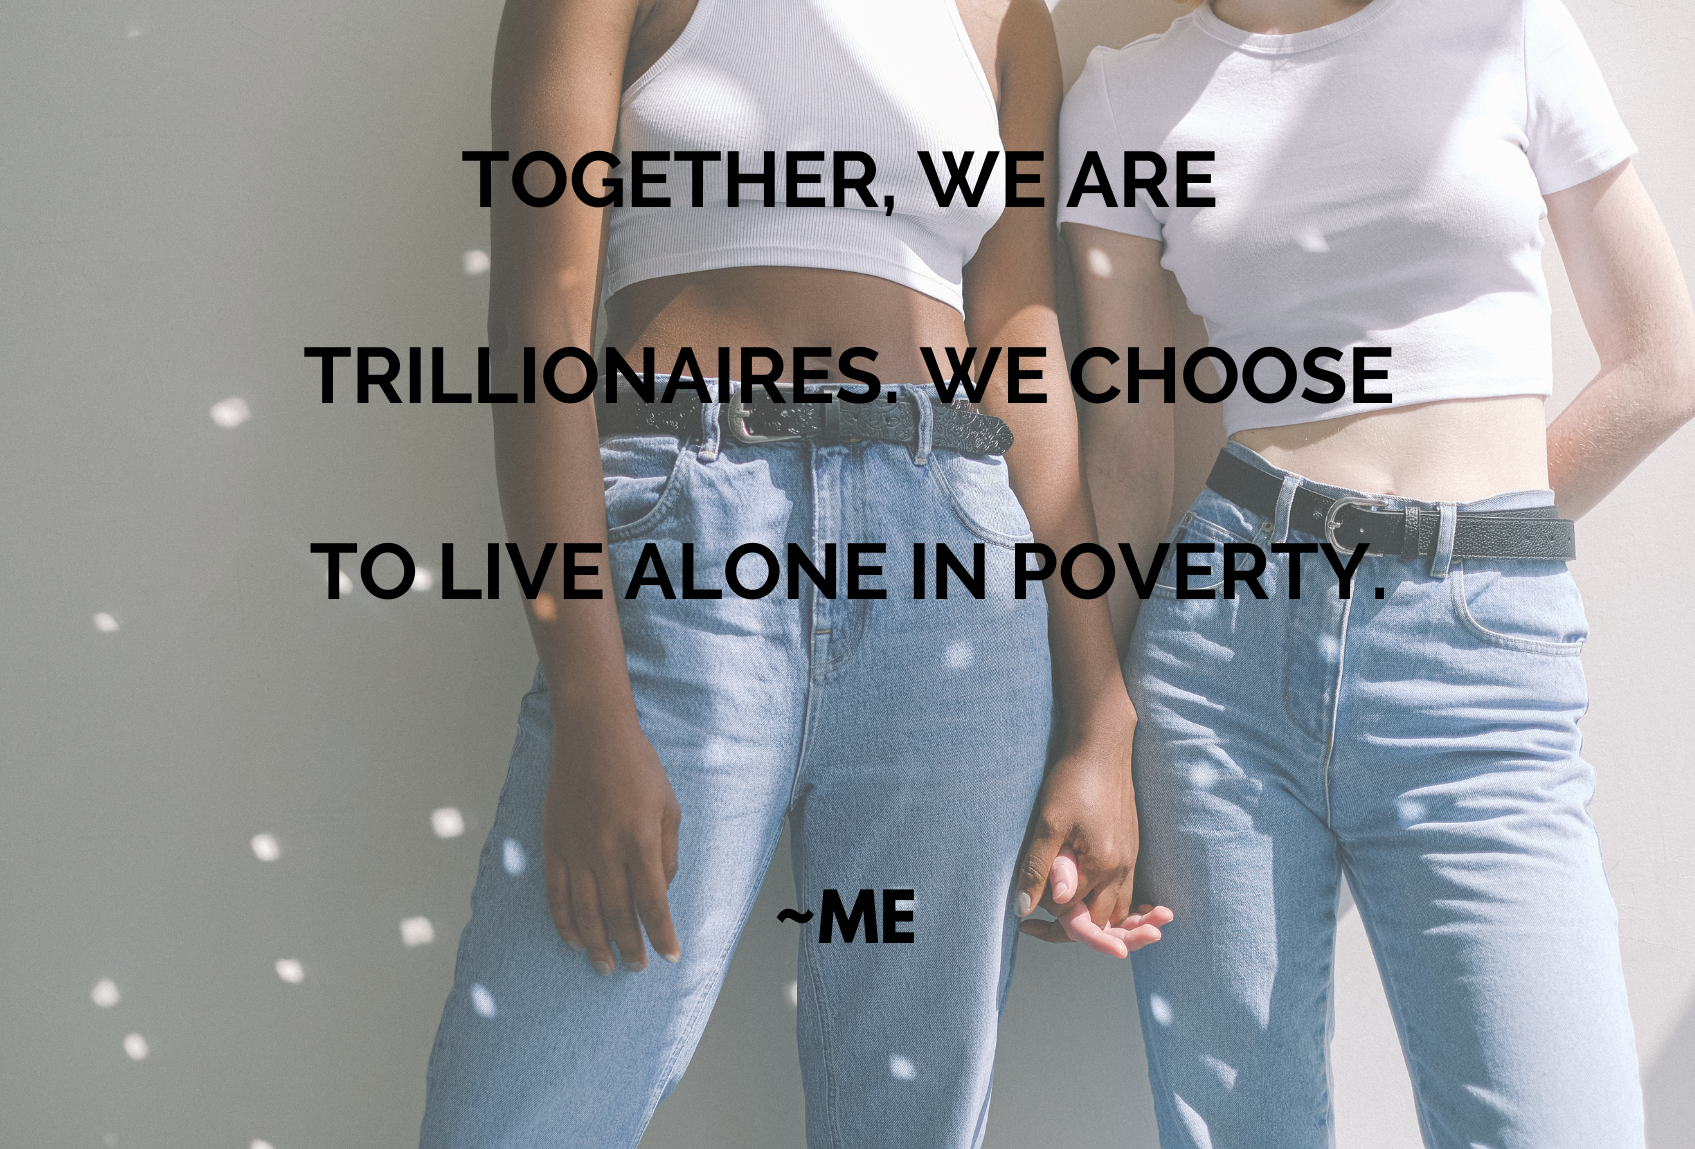 Together we are trillionaires. We choose to live alone in poverty. [1695 x 1149]